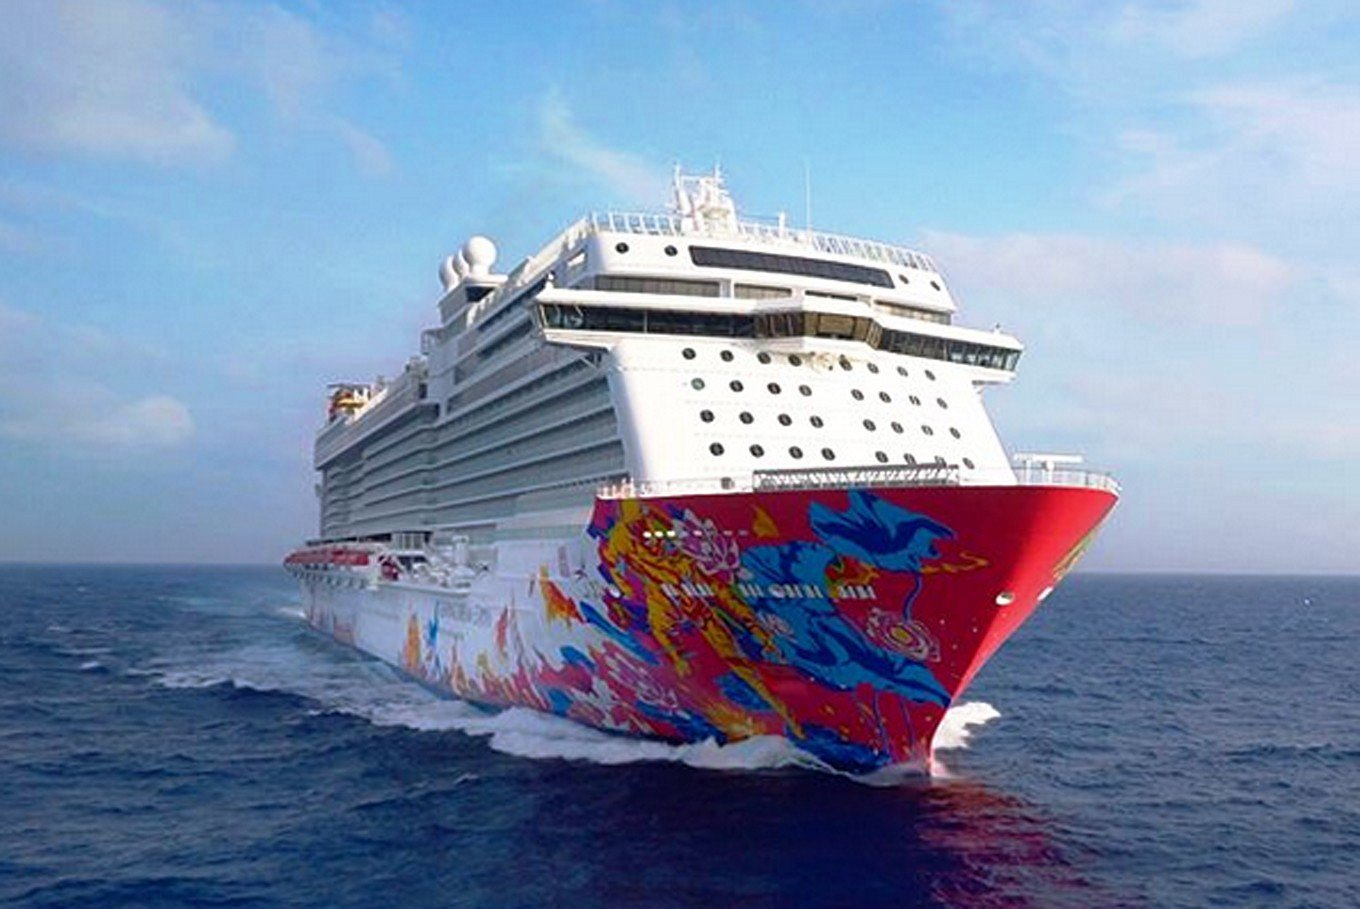 Genting Dream Cruise Ship To Dock In Tanjung Priok In